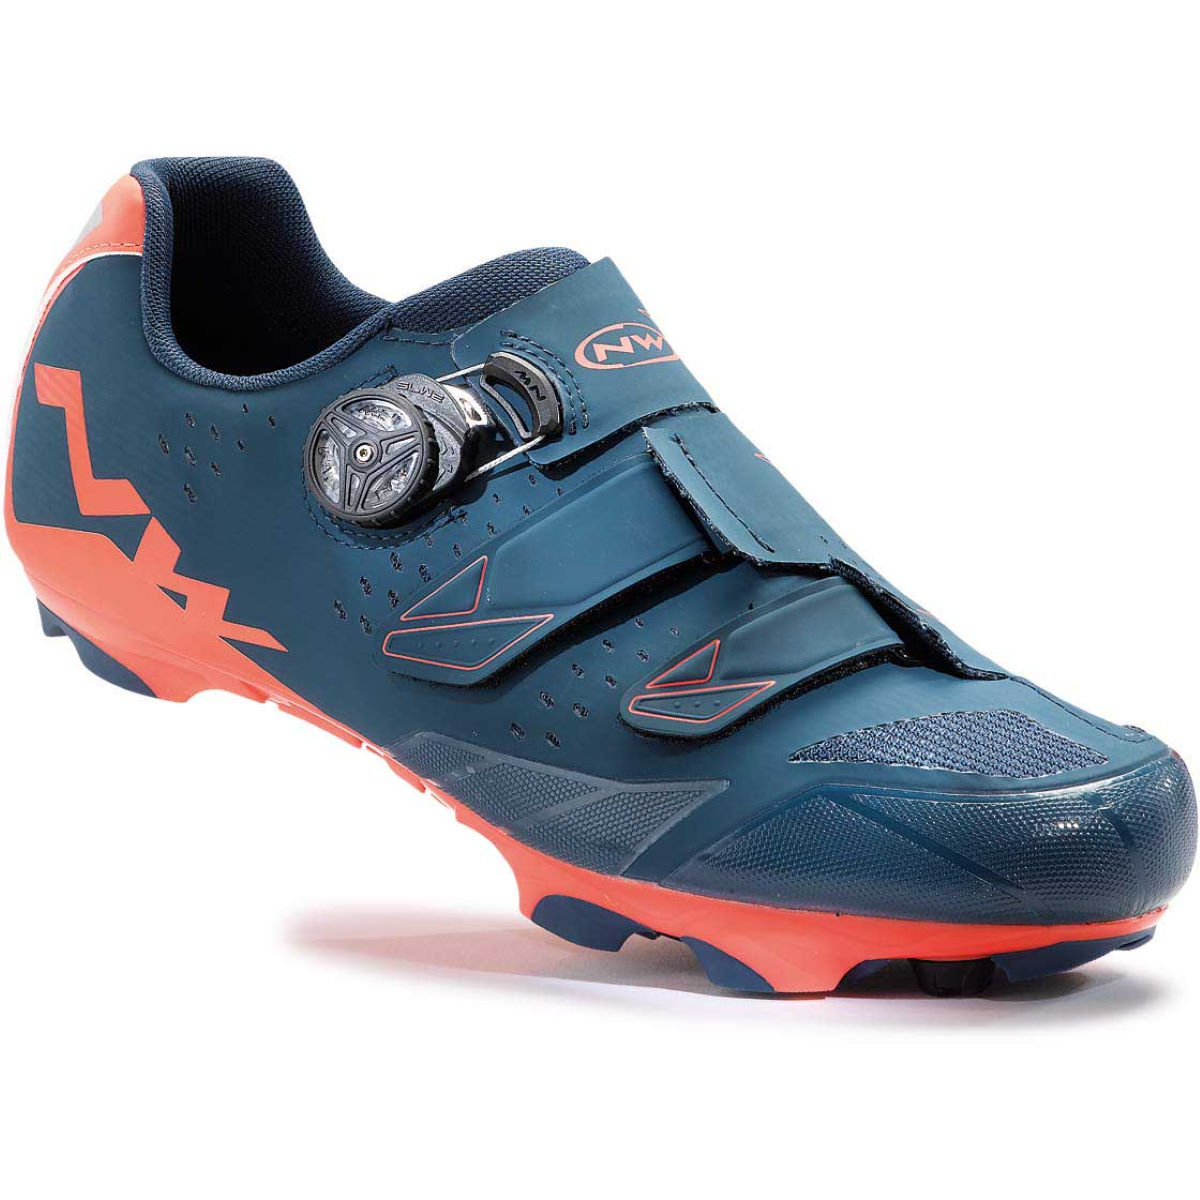 Chaussures Northwave Scream Plus - 43 Blue/Orange Chaussures de vélo